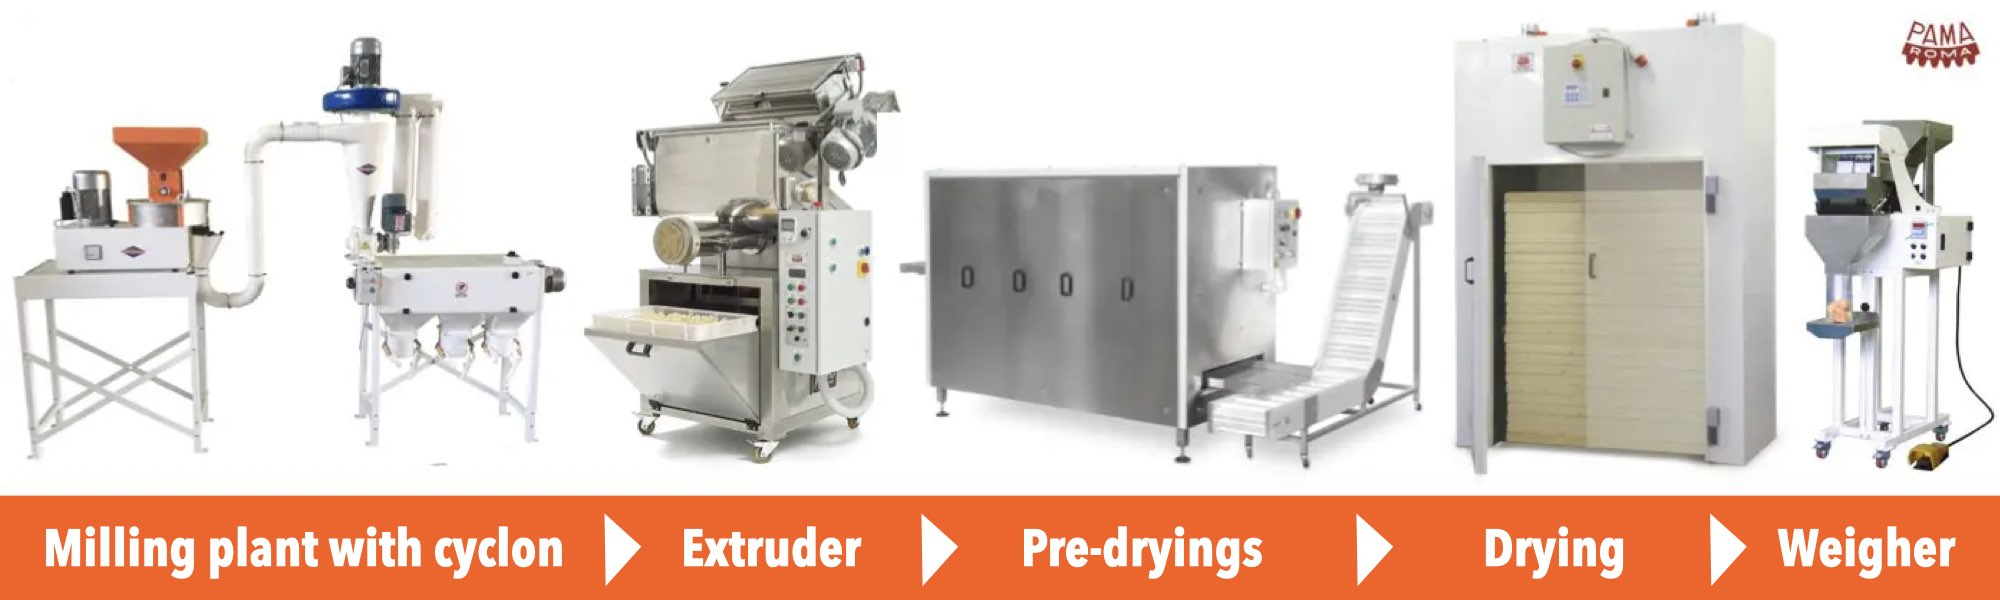 Dry pasta for agricultural companies